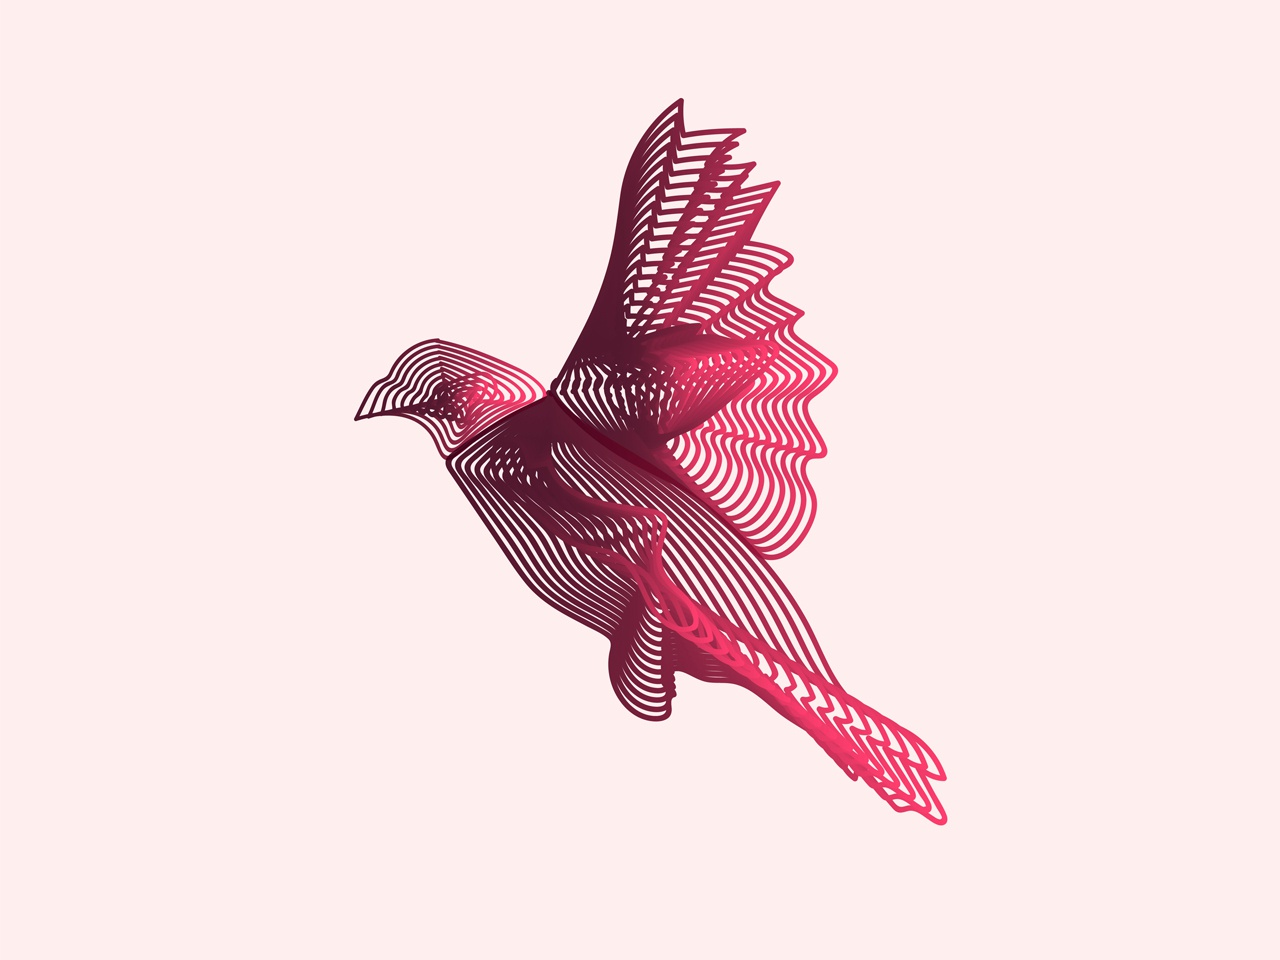 Bird Vector Design - Blend Tool, Adobe Illustrator by Ciuca